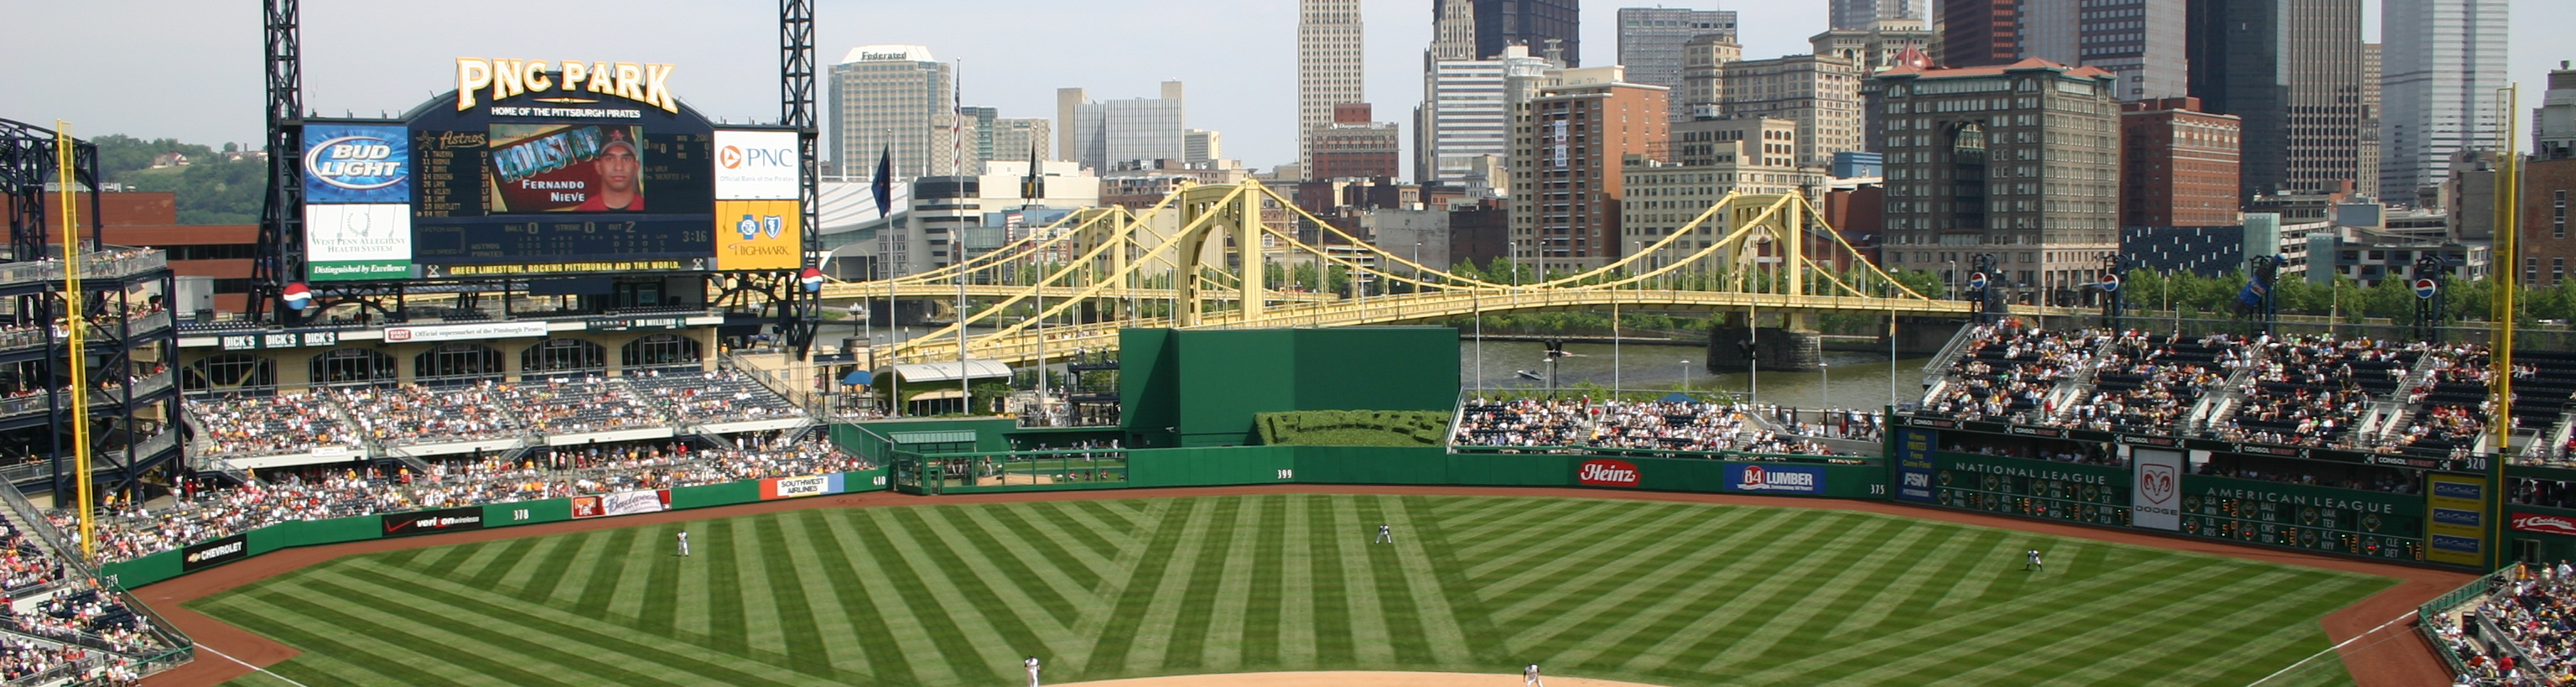 PNC_Park_Bridge.jpg